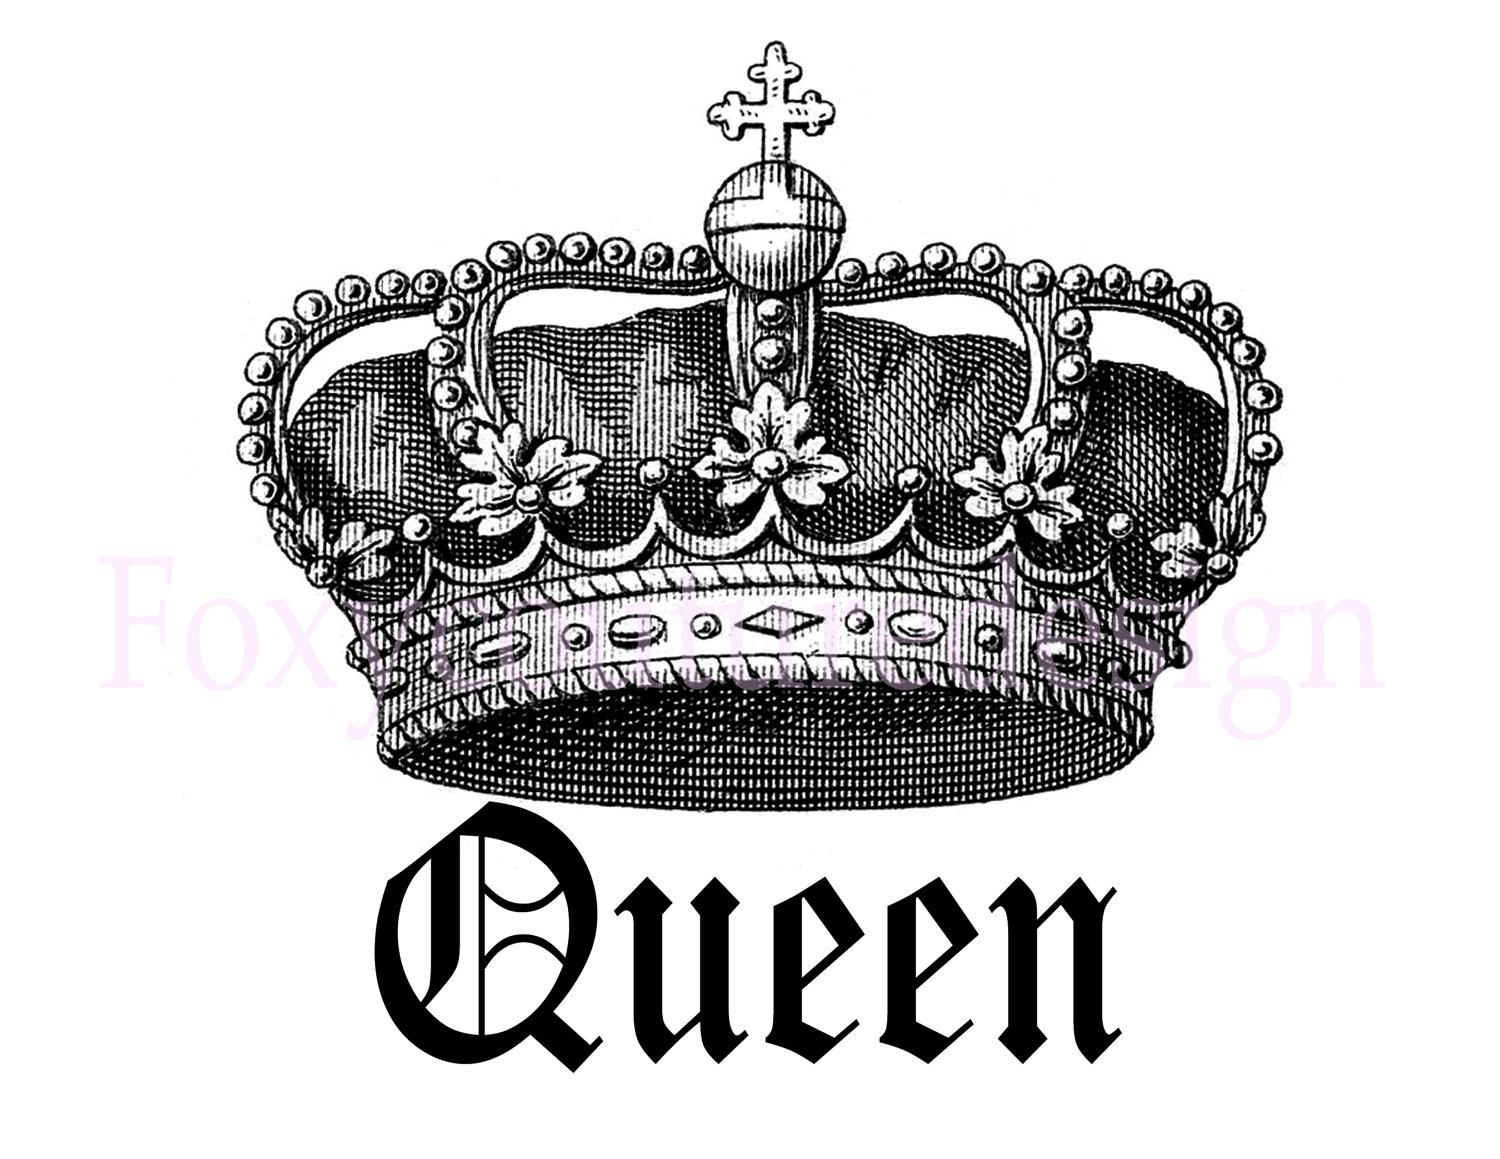 King and queen crown clipart clipart download 17 Best ideas about King Crown Tattoo on Pinterest | Queen crown ... clipart download